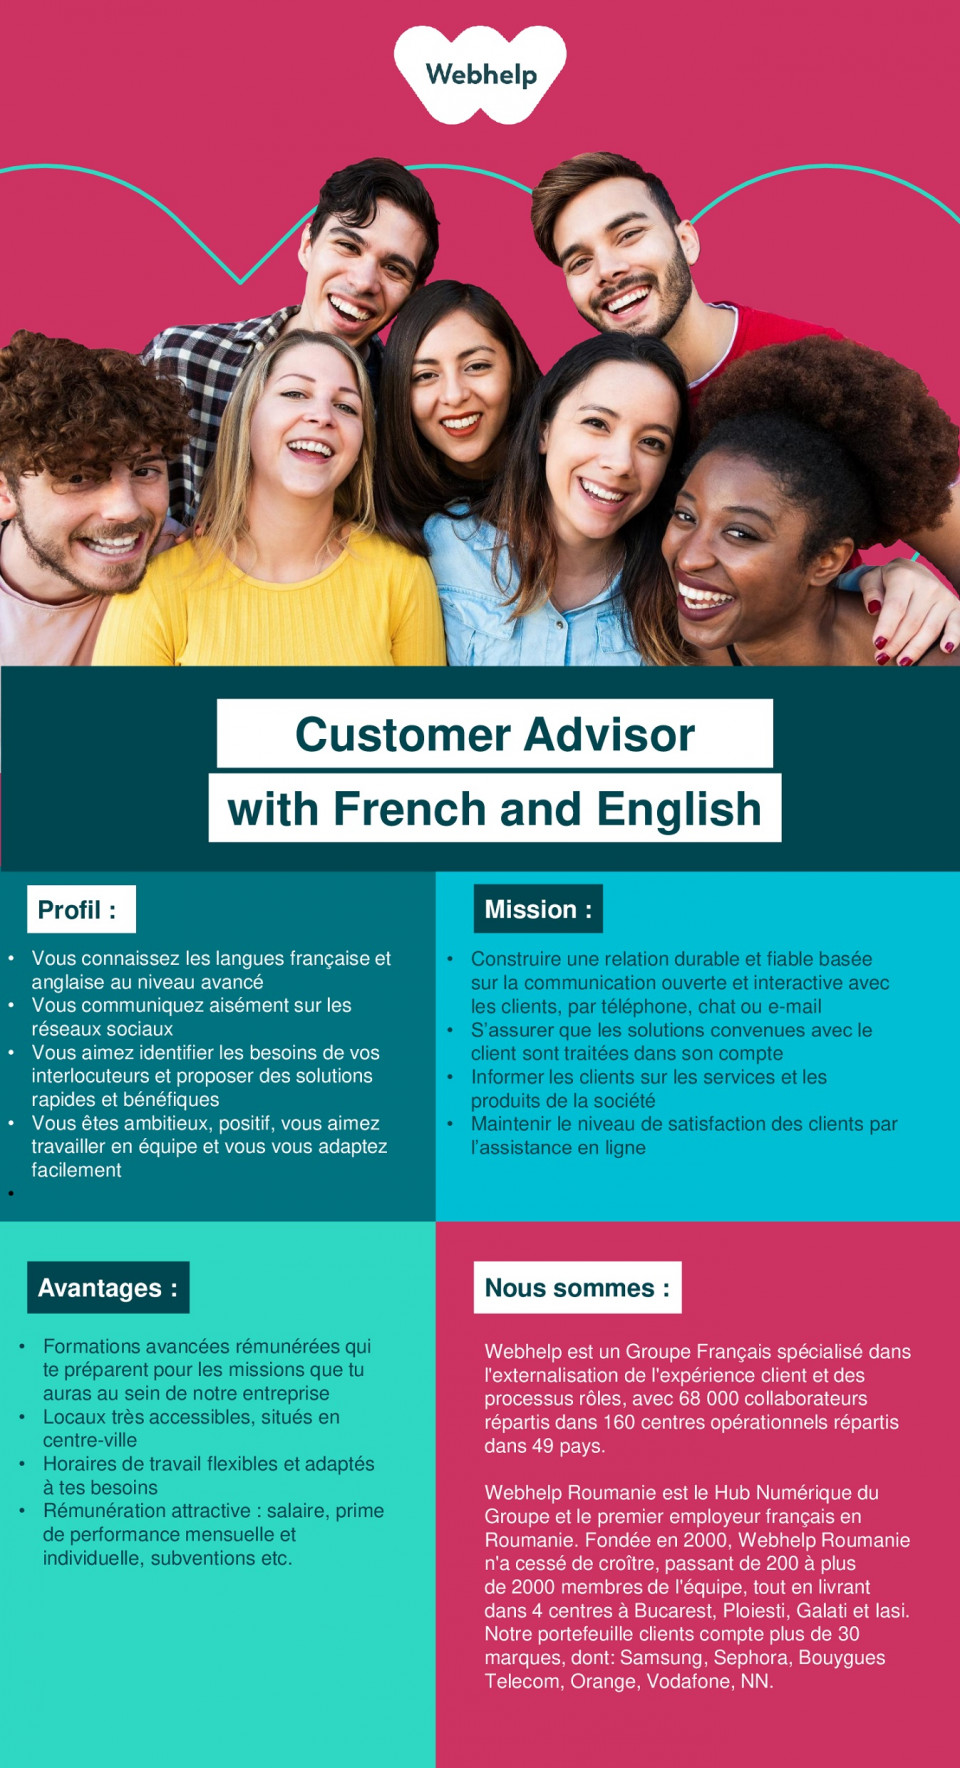 Customer Advisor with French and English call center, relationare clienti, customer support, advisor, customer care, franceza, engleza    Create excitement around Client's products and offer information to Customers about their accounts  Provide solutions to Customers' issues in order to deliver an excellent experience and create brand engagement  Get involved in developing new processes as you will be part of our exciting new project from the beginning  Keep on learning and advancing your career through our continuous developement programs  A pleasant working environment  Very attractive salary package and performance bonus  Schedule: Monday to Friday (10:00 – 19:00)  We want you to be successful and to ensure you maximize your income, you will receive full training and support.  We are a global community of passionate, fun-loving people who thrive on making a difference on behalf of the world's most exciting brands. We use our smarts, our hearts and a drive to make business more human.  Webhelp is a French Group specialised in customer experience and business process outsourcing, with over 55,000 employees working in 140 operations centres located across 36 countries. Number 1 in Europe and ranked in Top 7 Best Global BPO, Webhelp Group continues to increase its teams, promoting a policy of customer and employee satisfaction.   Webhelp Romania is the Group's Digital Hub and the leading French employer in Romania. Our Client portfolio comprises more than 30 brands, including Samsung, Sephora, Bouygues Telecom, Orange, Vodafone and NN.